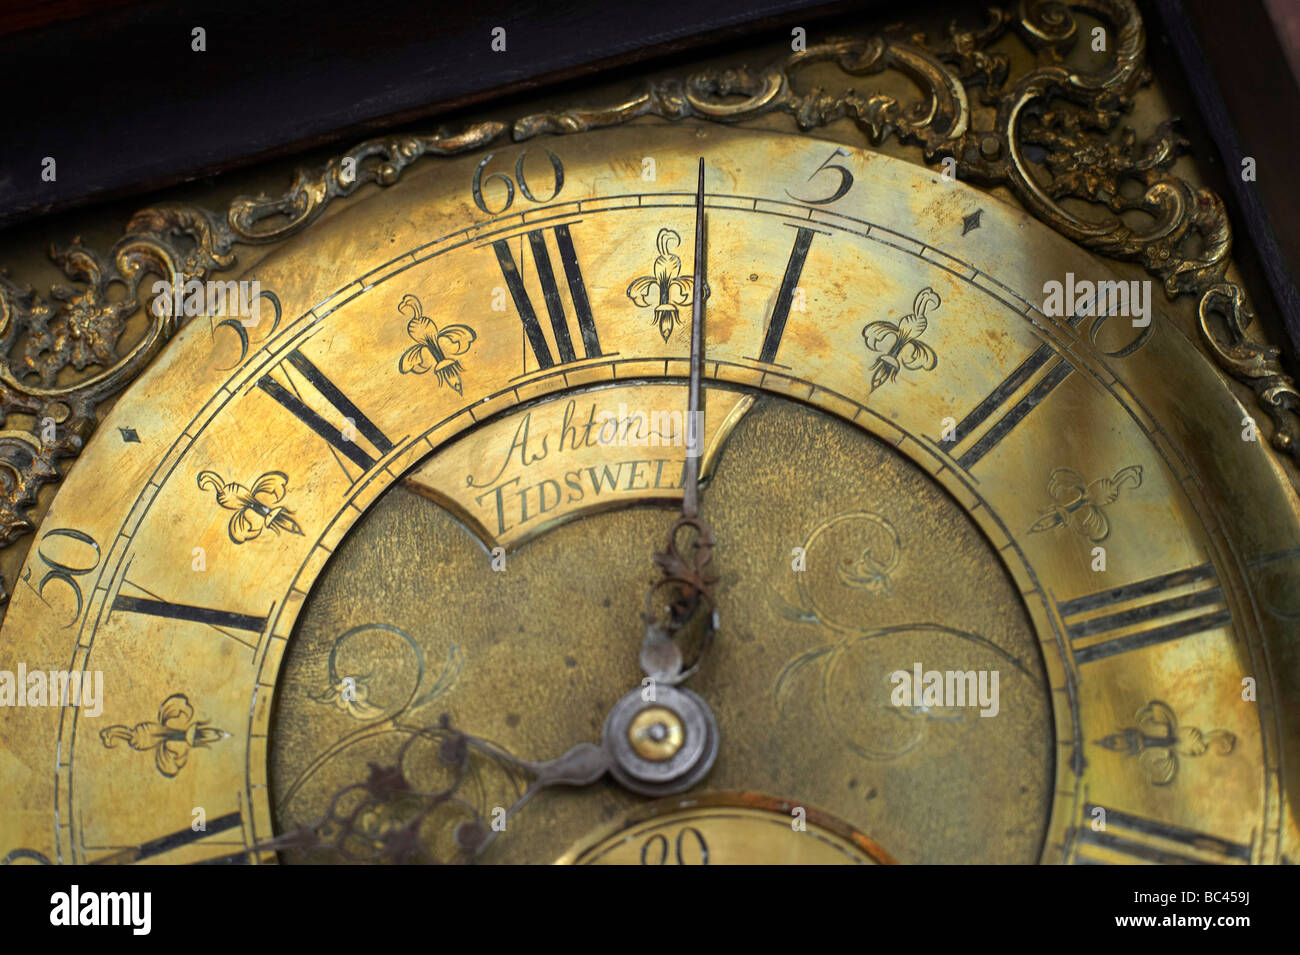 Antique Grandfather Clock Stockfotos & Antique Grandfather Clock ...